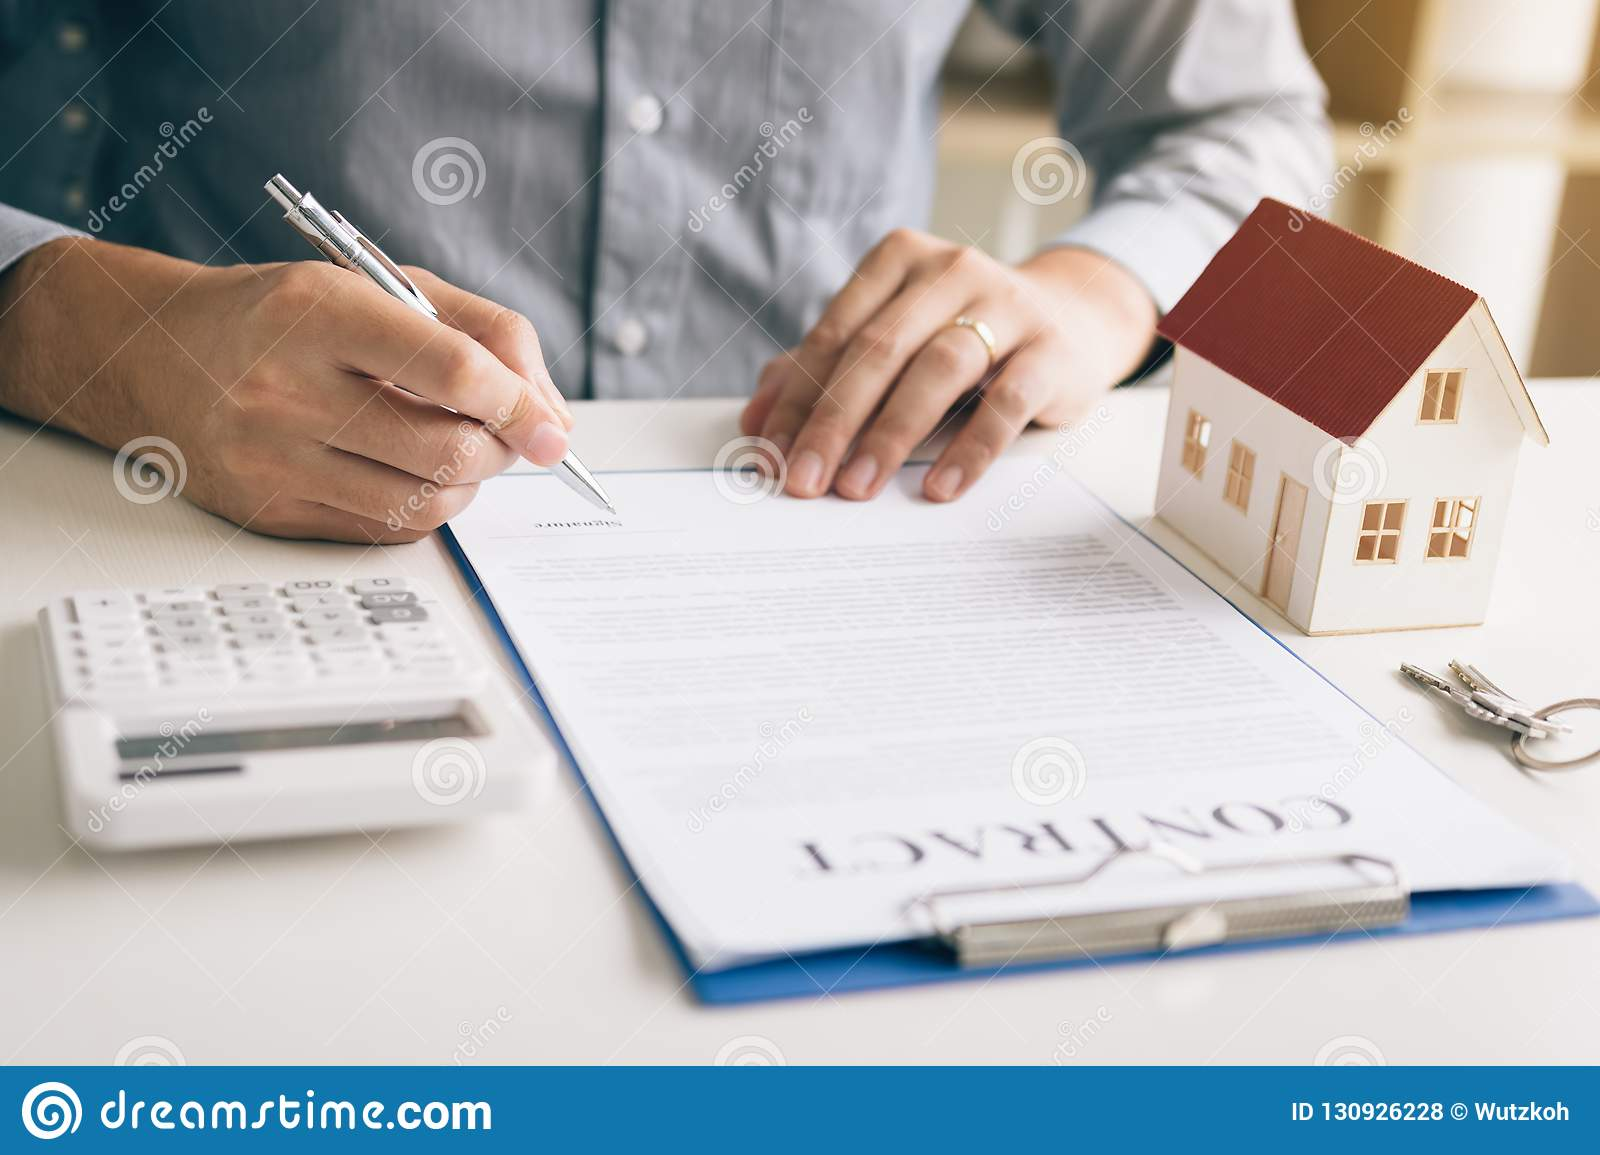 New home buyer signing contract on desk in office room.